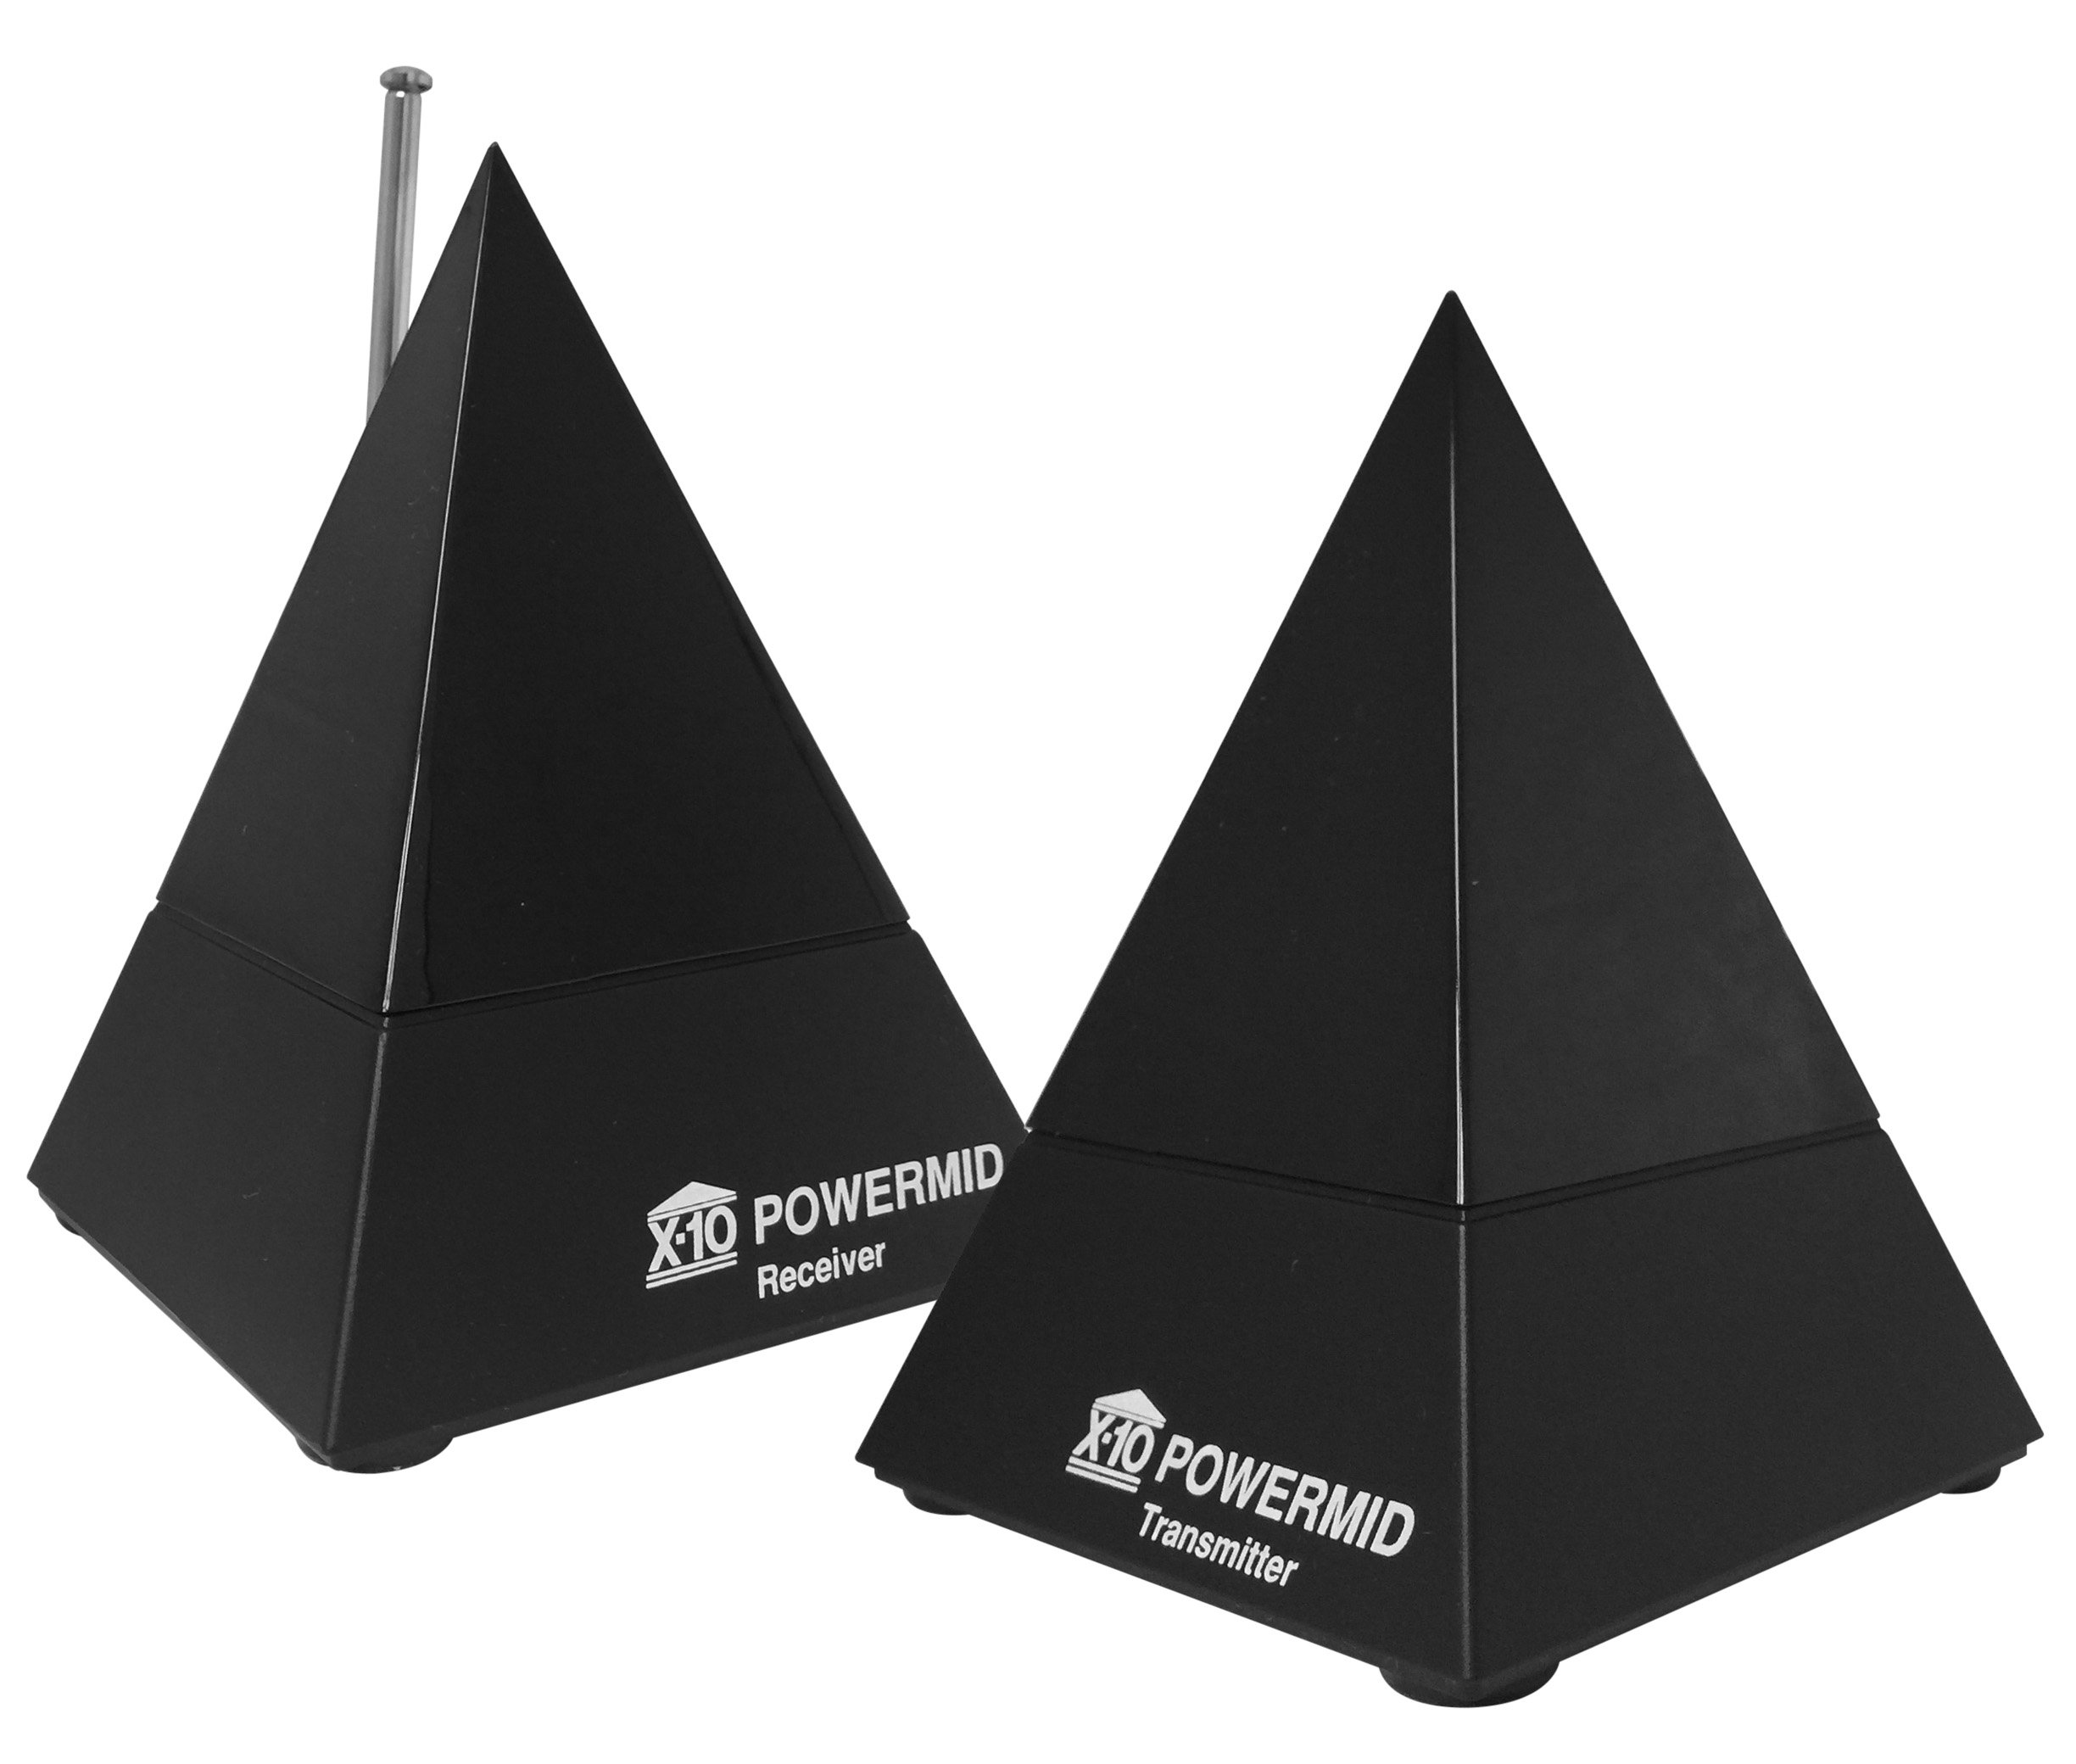 X10 Powermid PM5900 Remote Control Extender Kit - Includes a Transmitter and Receiver